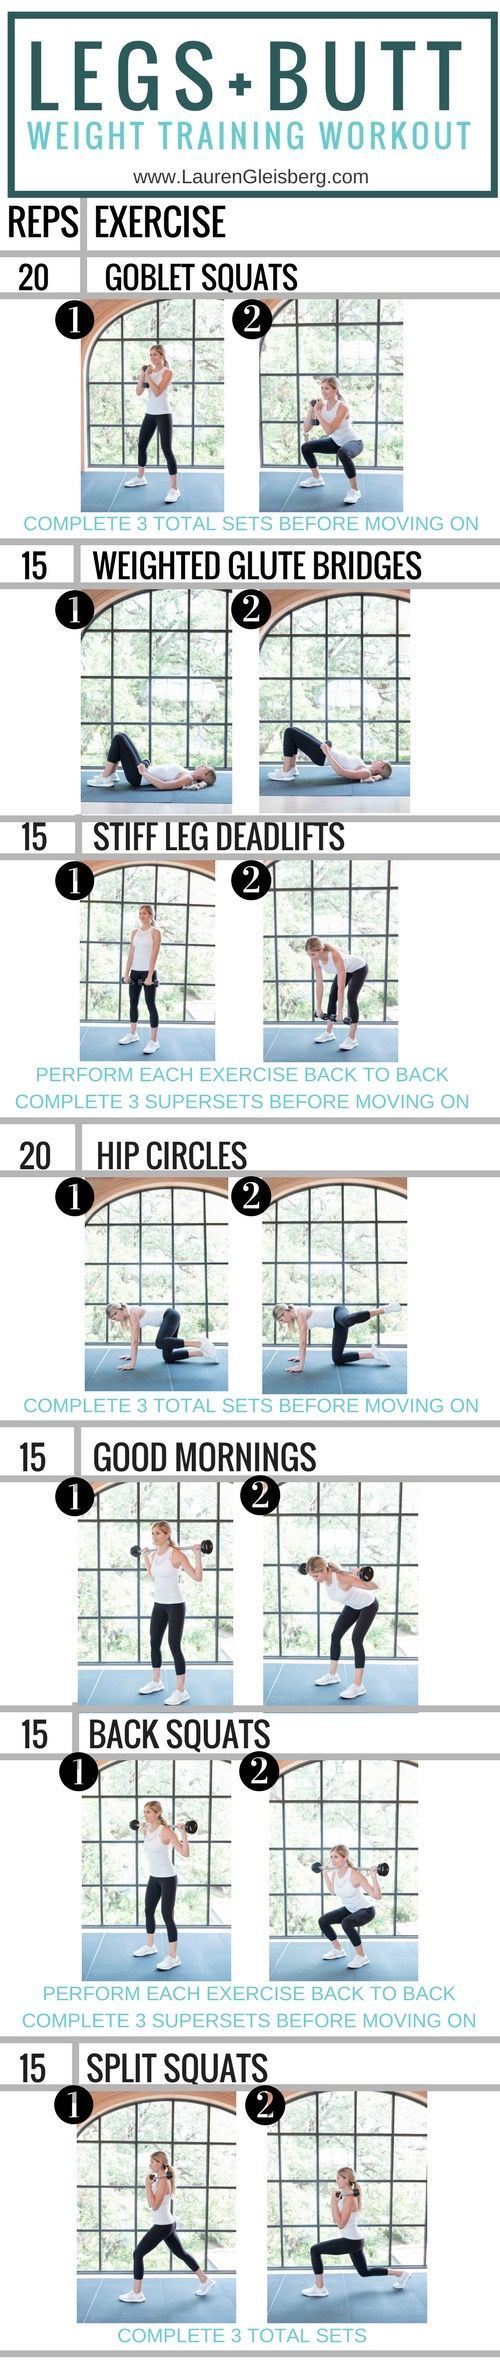 Legs and Bum Workout | Posted by: CustomWeightLossProgram.com